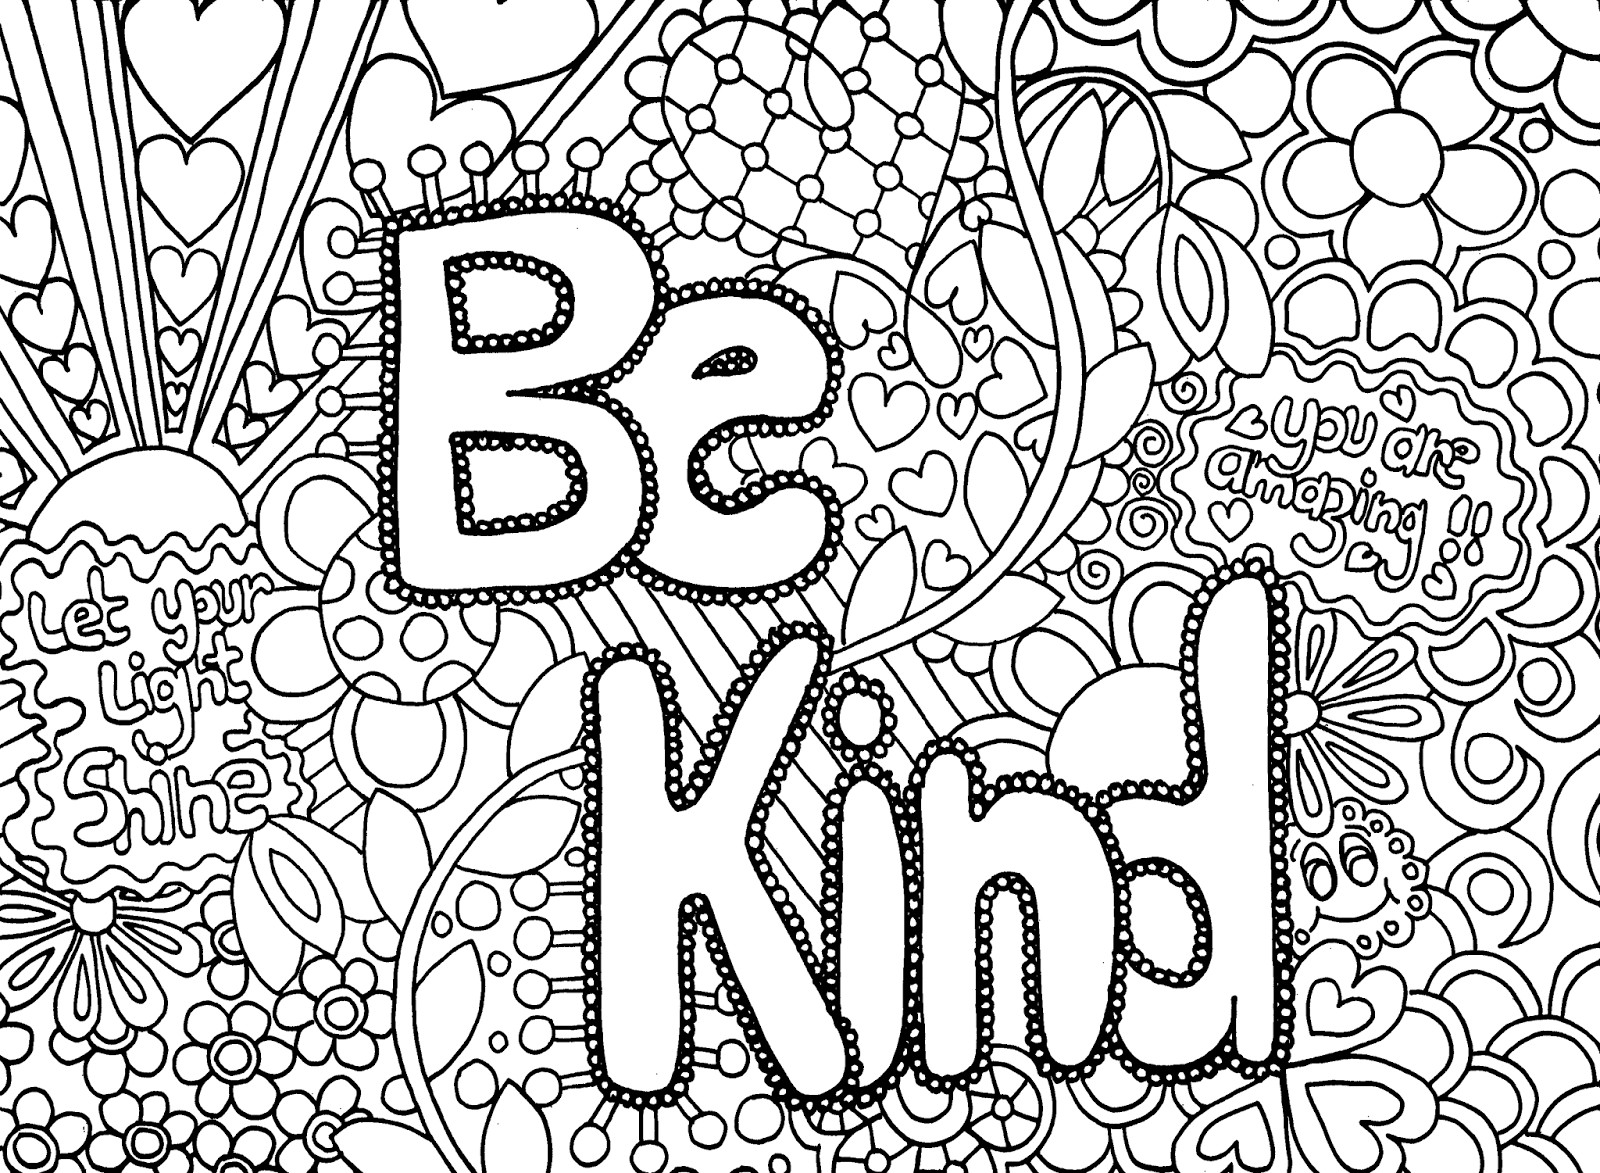 Free Coloring Sheets For Teens  just say no coloring pages